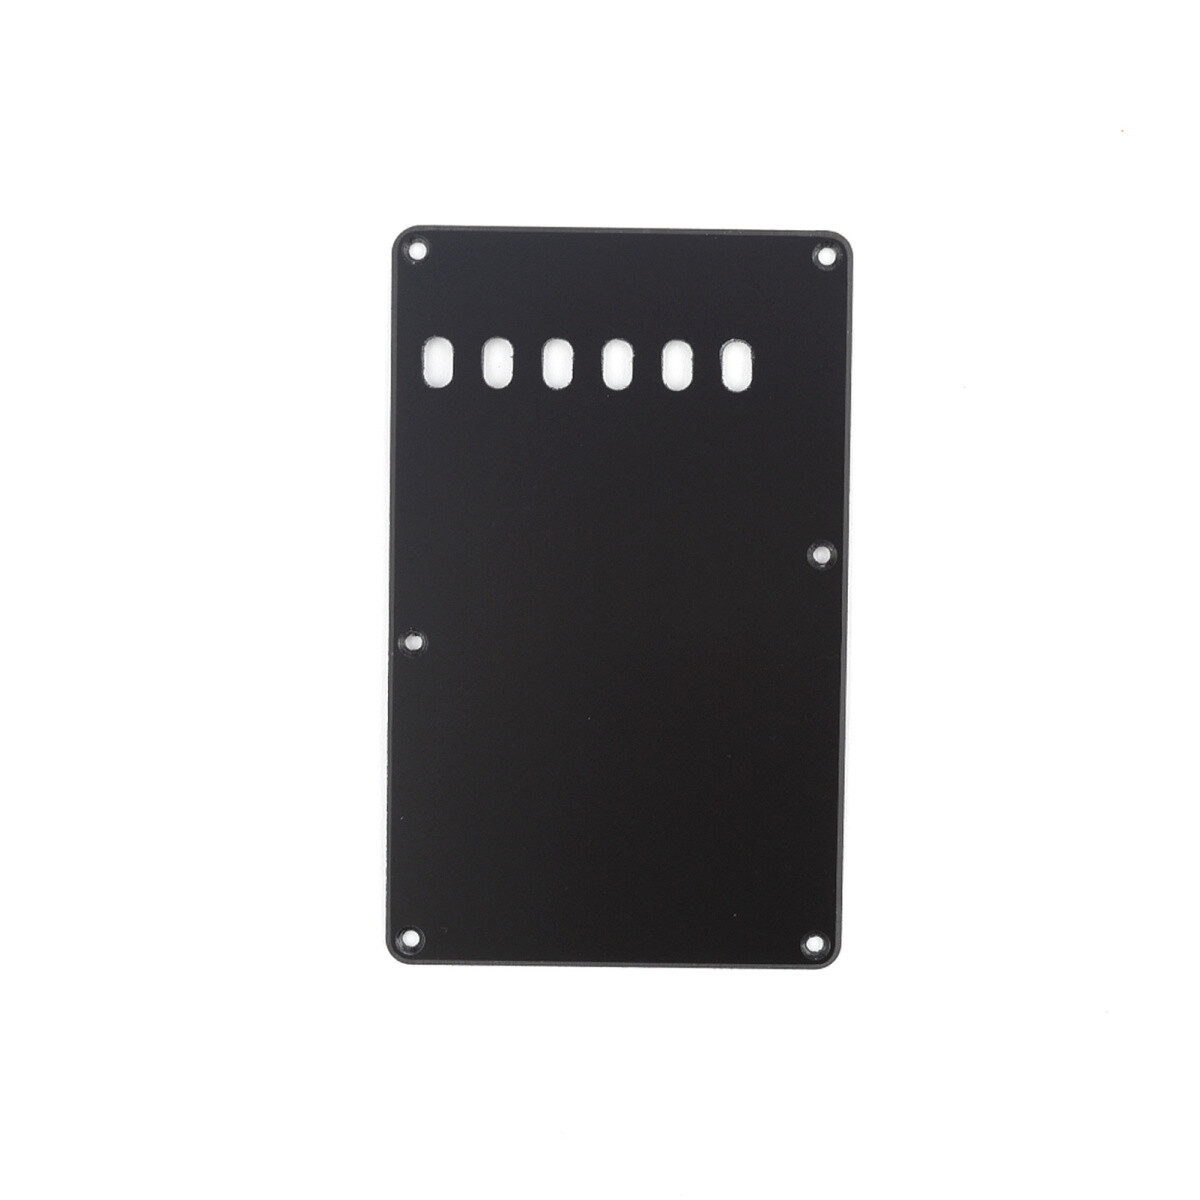 Brio Matte Black Vintage Style Back Plate Tremolo Cover 1 ply - US/Mexican Fender®Strat® Fit